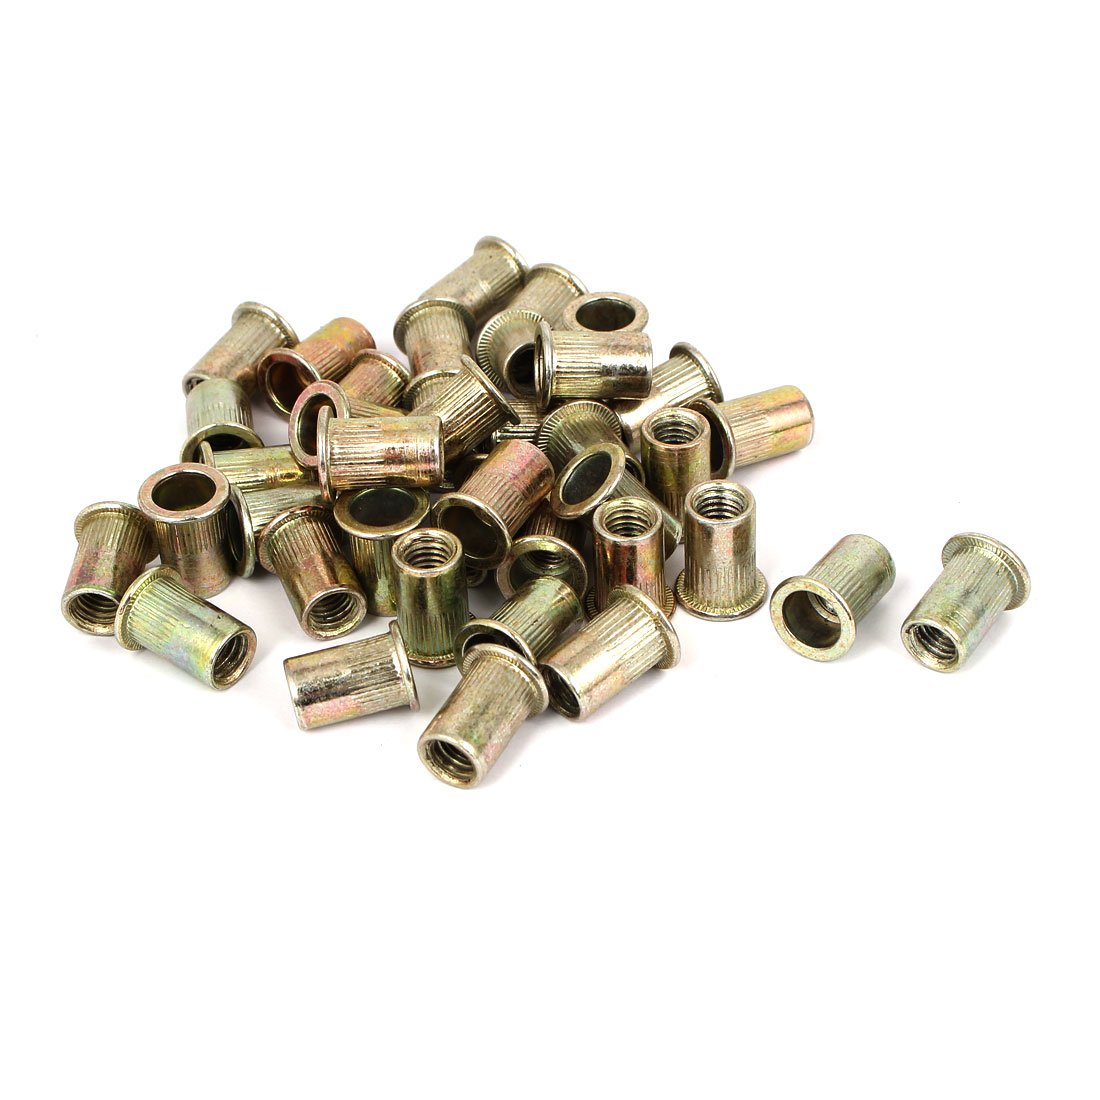 M8 x 18mm Thread Metal Flat Head Rivet Nut Insert Nutserts Bronze Tone 40 Pcs